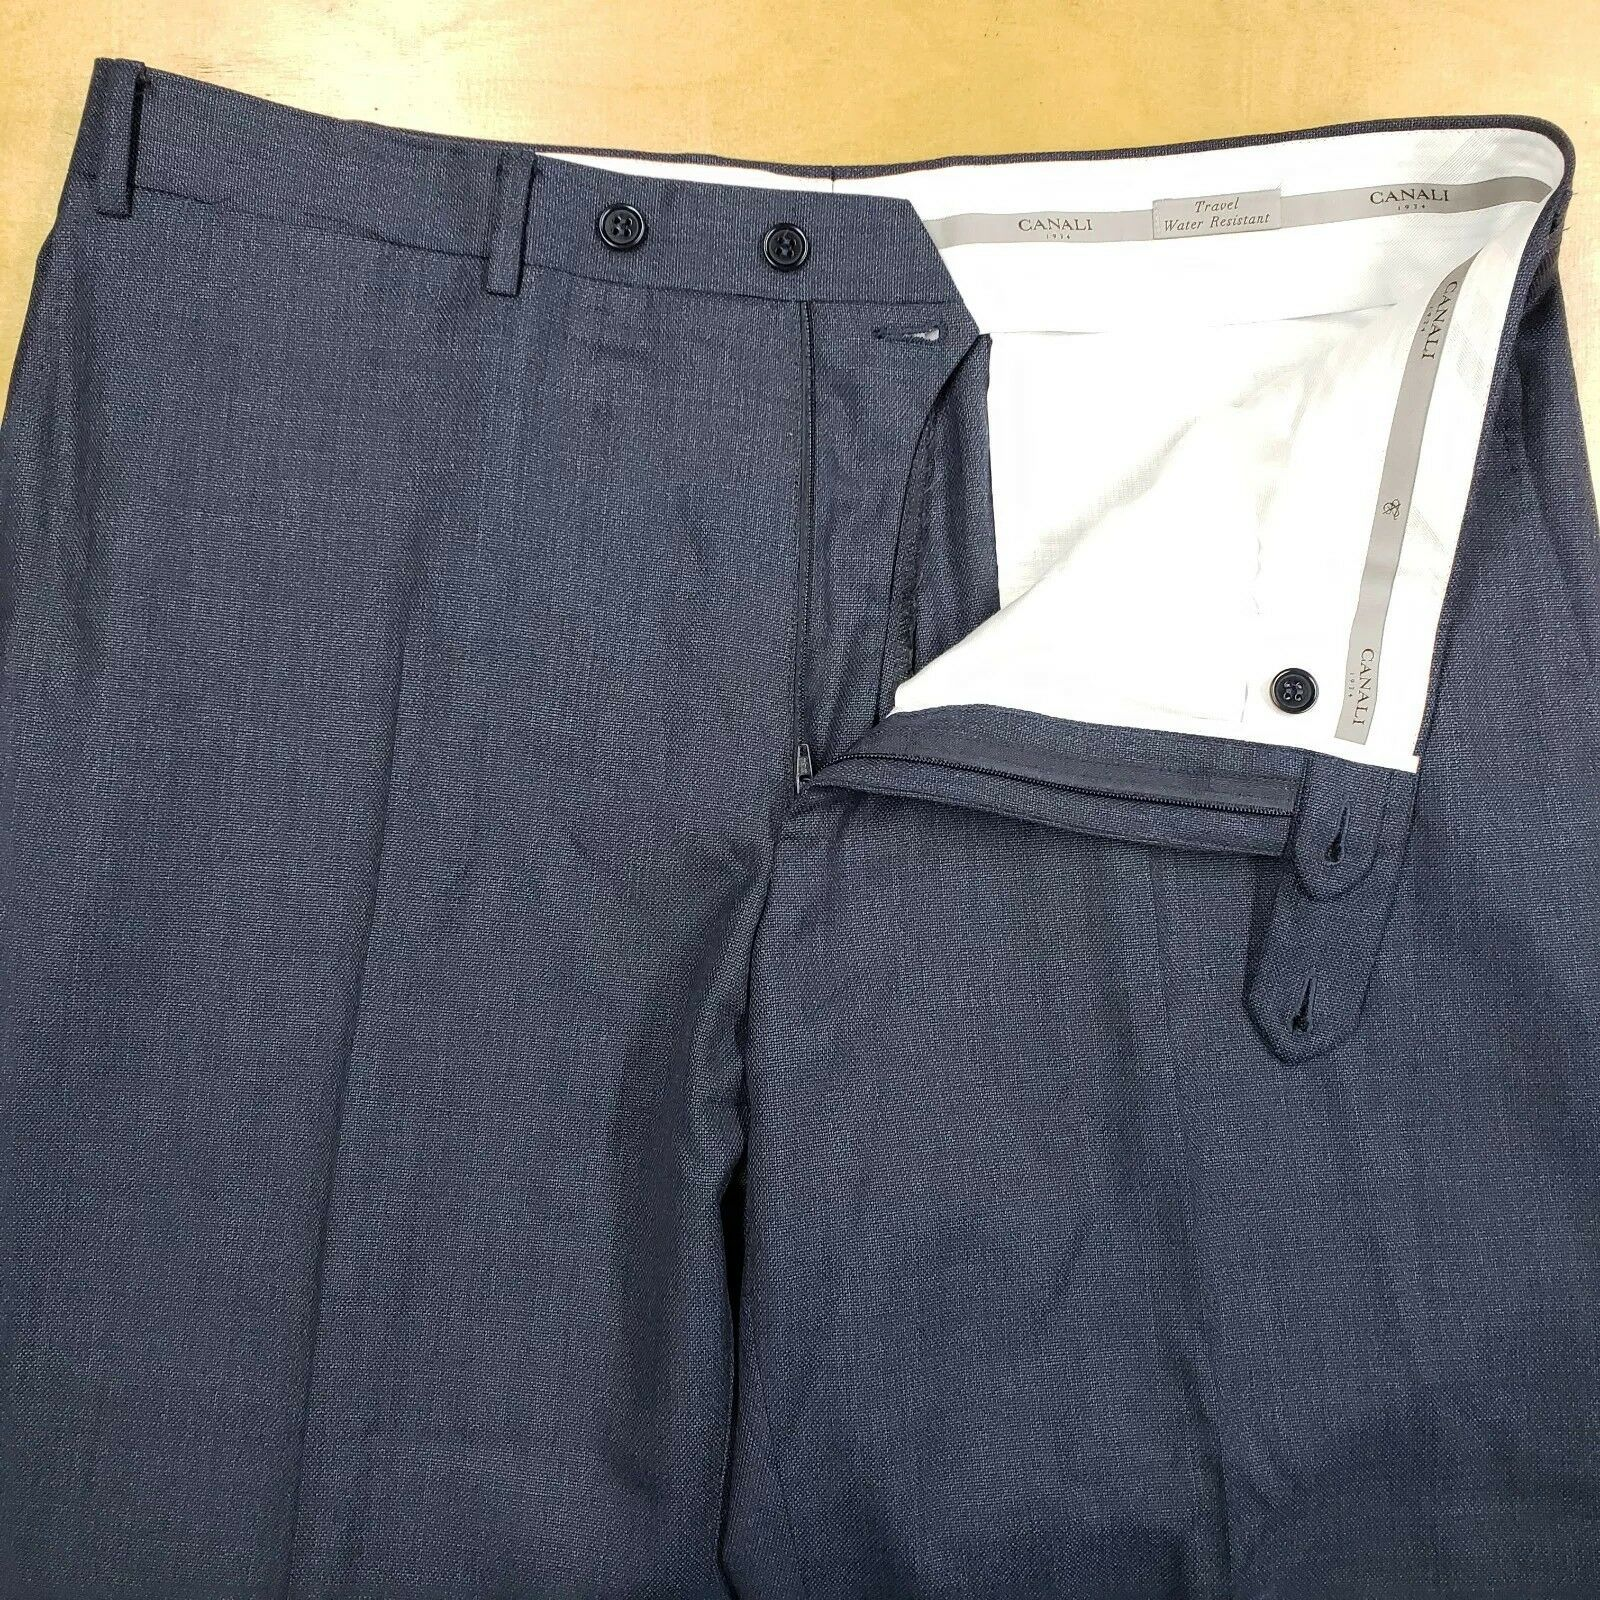 Current Canali 1934 Travel Water Resistant Woven bluee 5 Pkt Pants 35  EUC